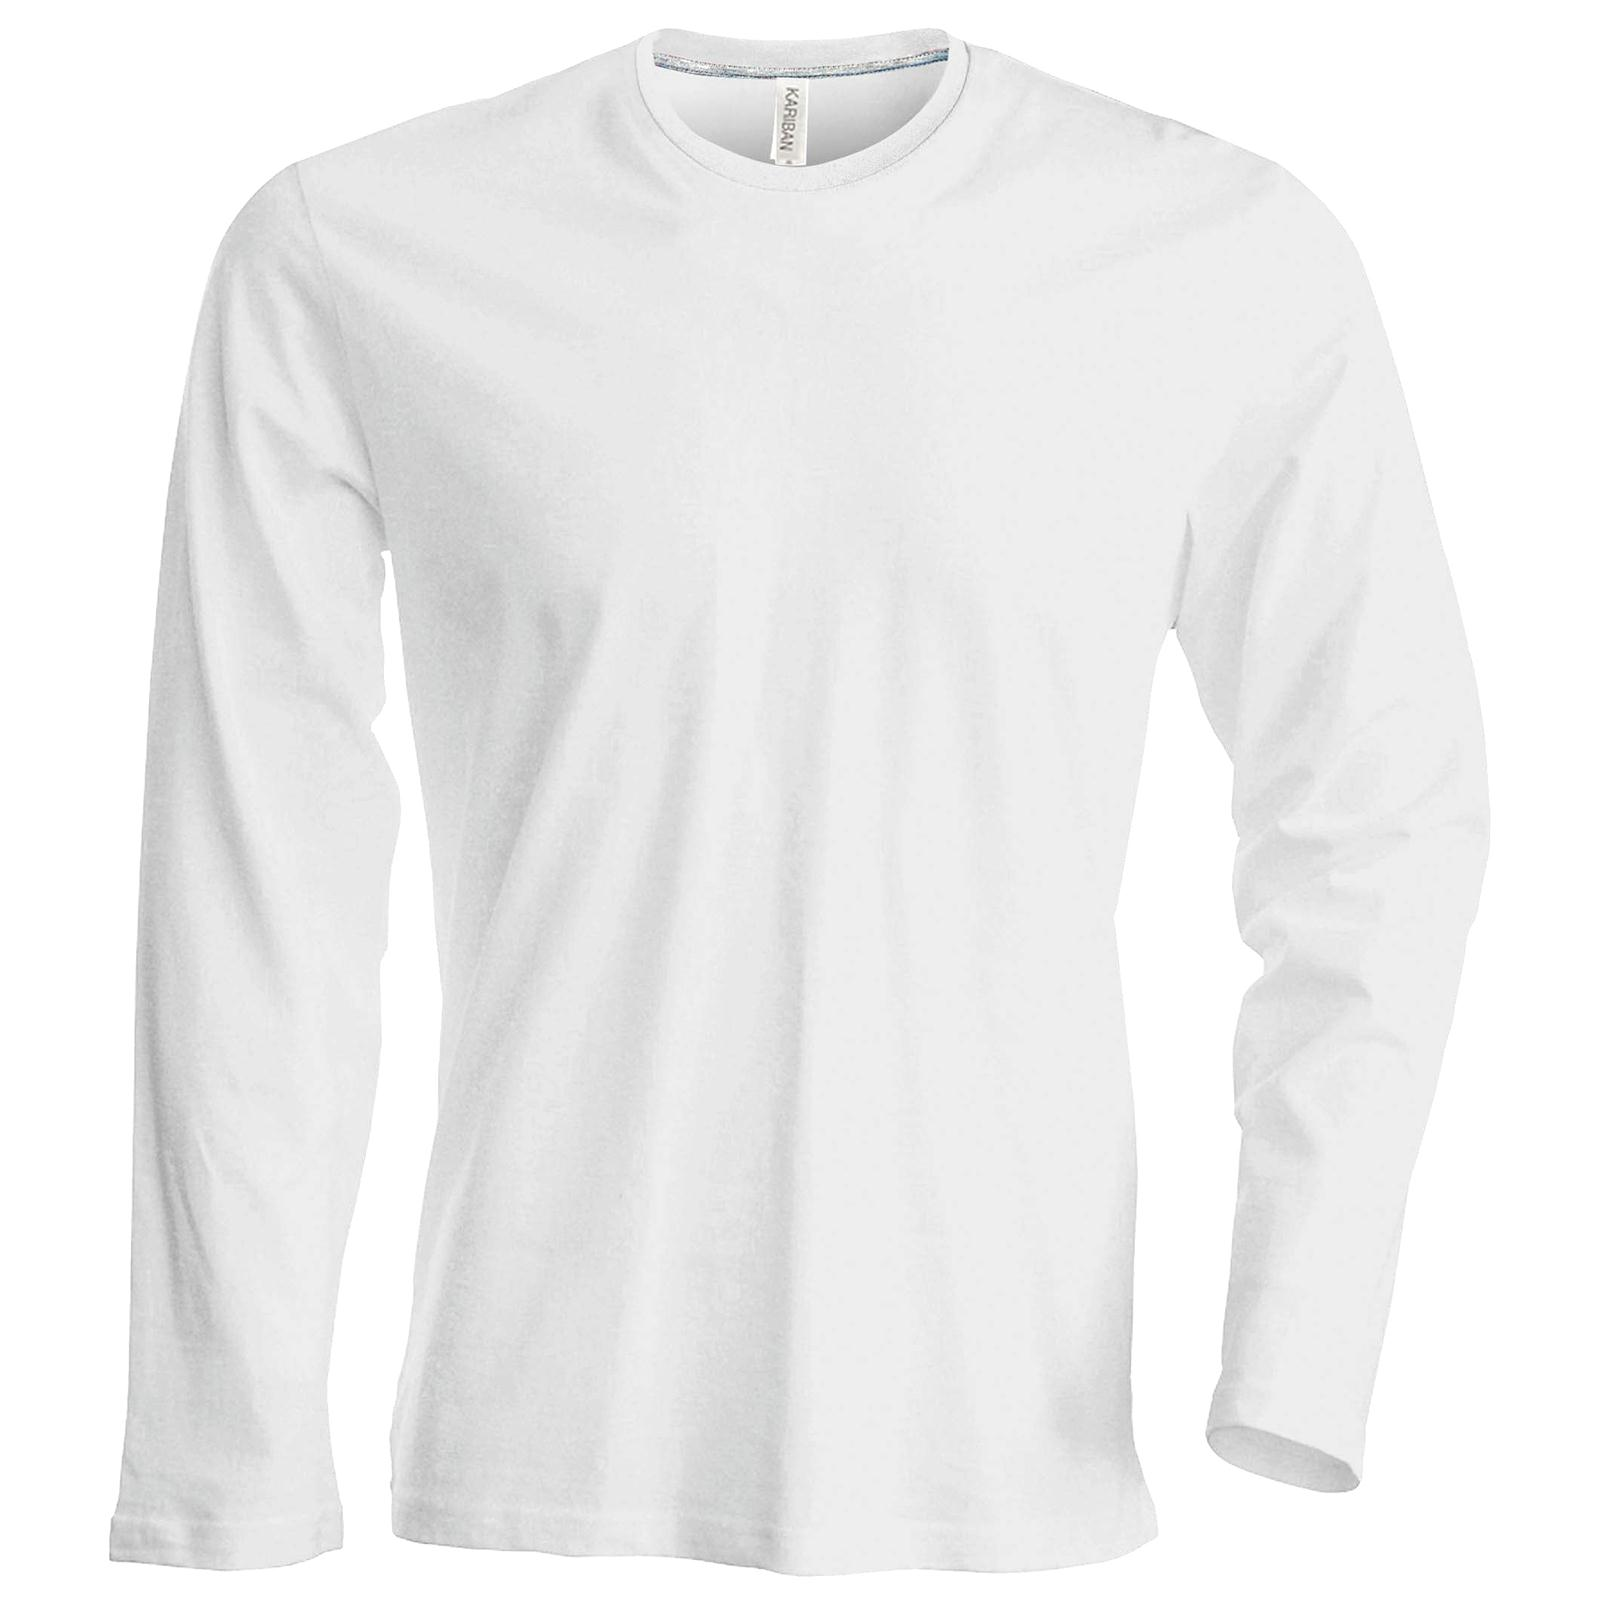 Mens Kariban Cotton Long Sleeve Slim Fit Crew Neck T-shirt Tops Size ... 1a604c050